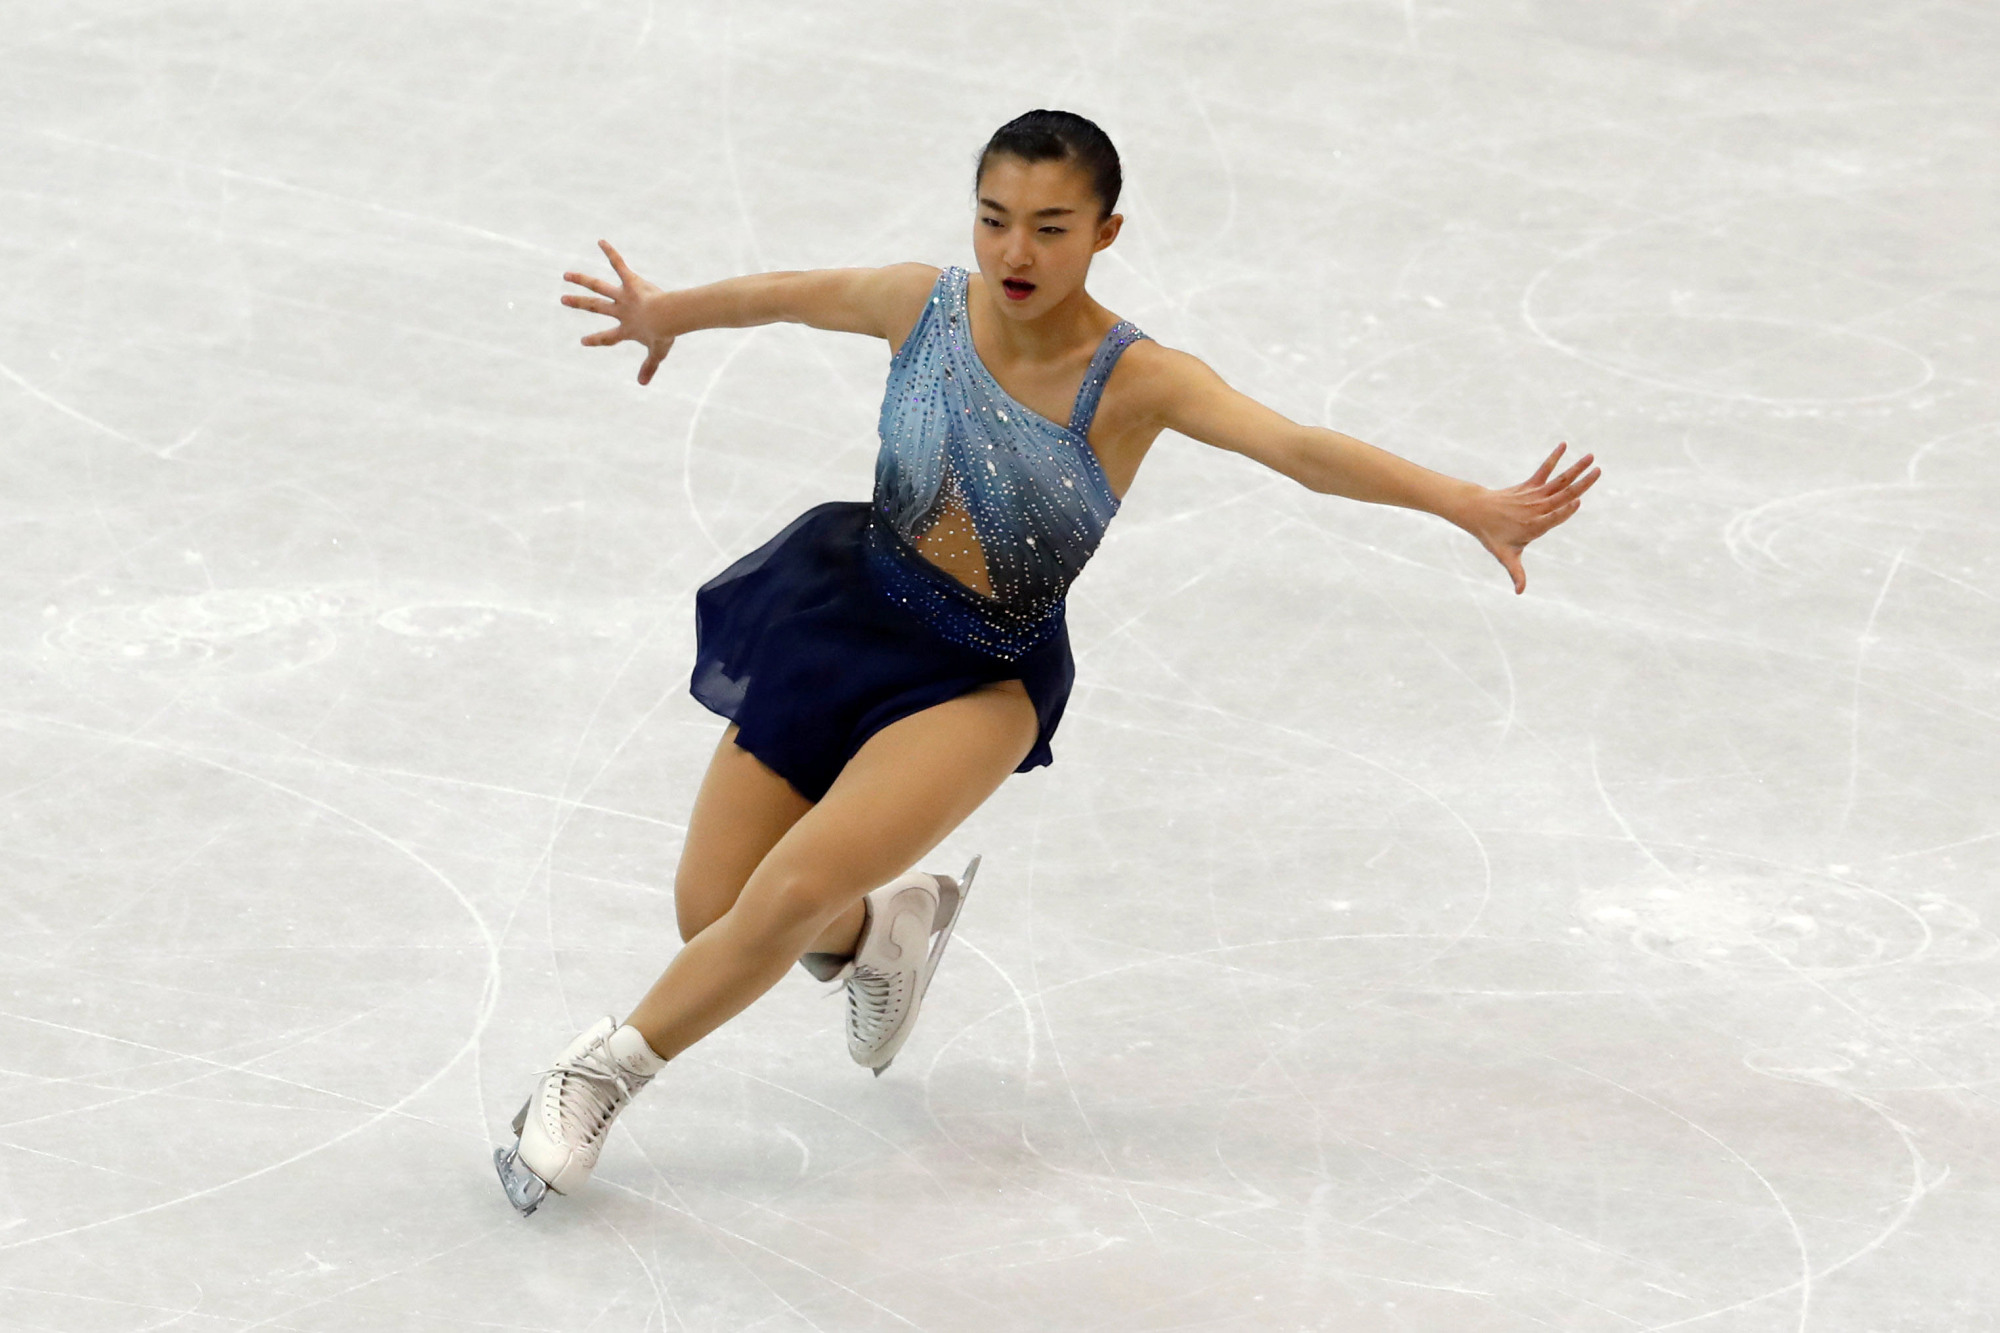 Kaori Sakamoto's meteoric rise continued over the weekend as she won her first major senior international title at the Four Continents Championships in Taipei.   REUTERS